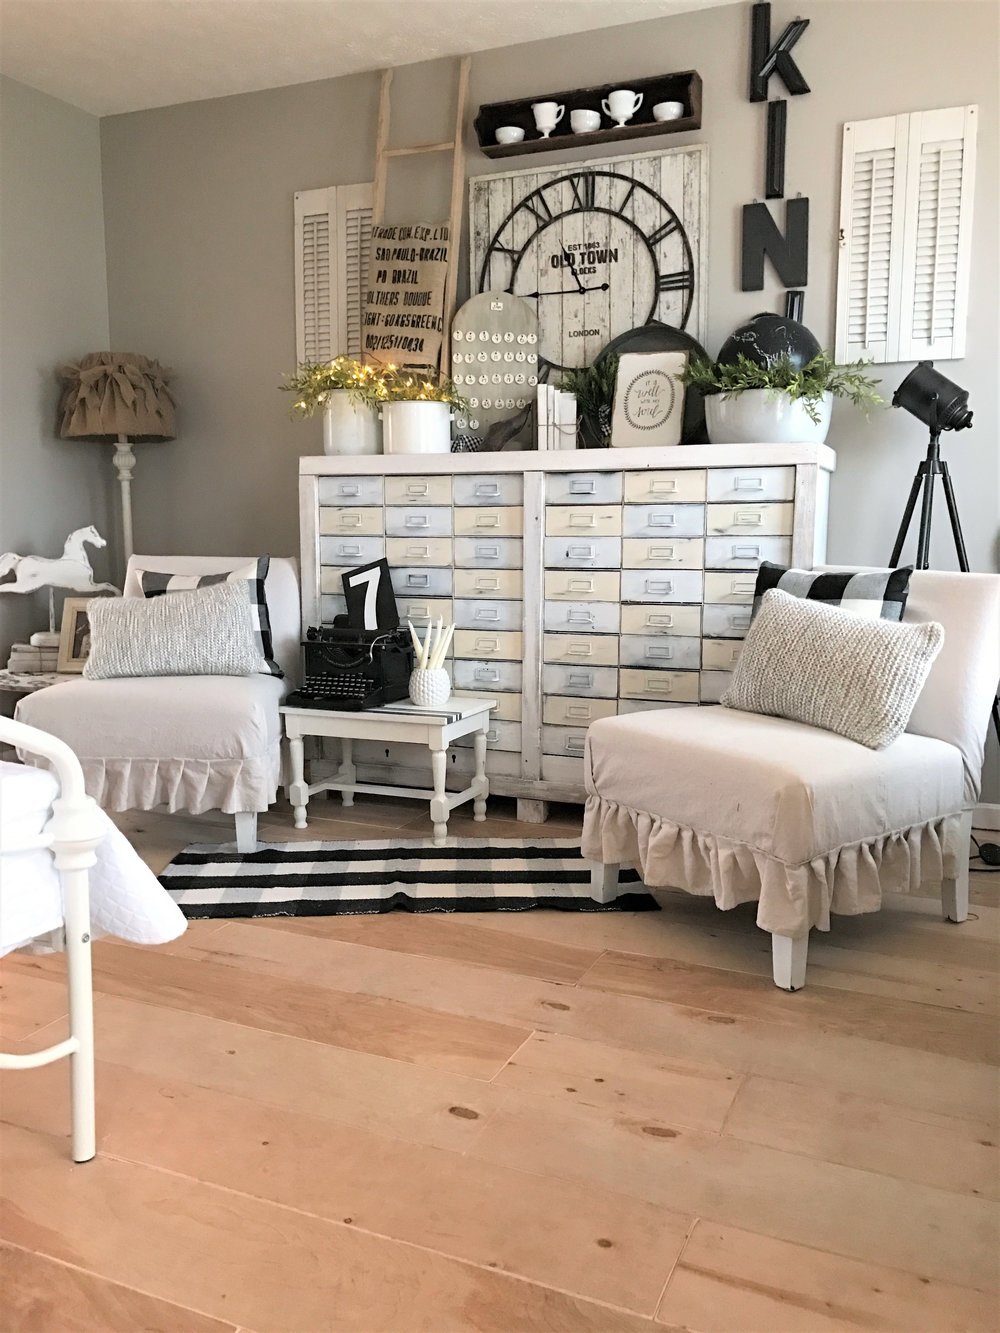 Winter Decor with Farmhouse Flair